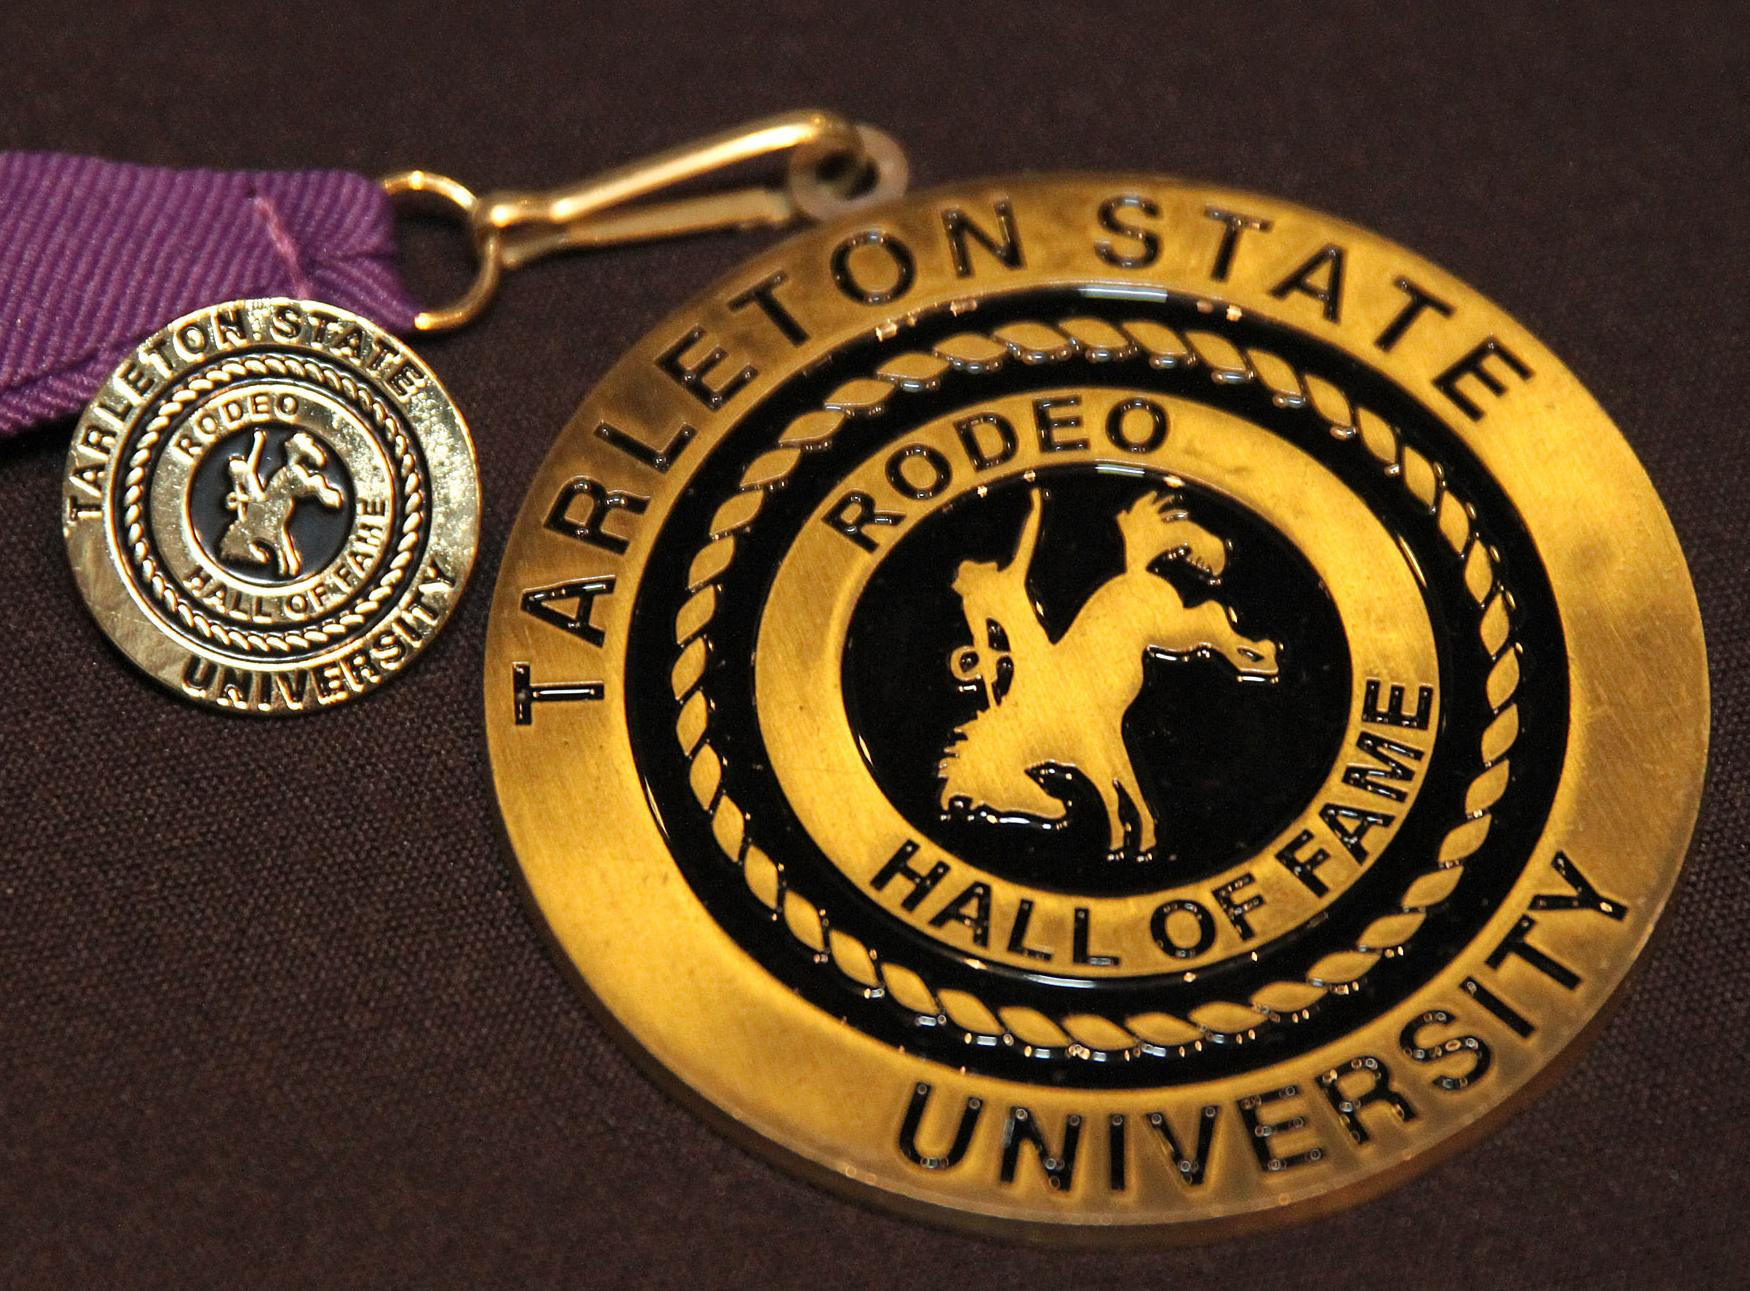 TSU Rodeo Hall of Fame